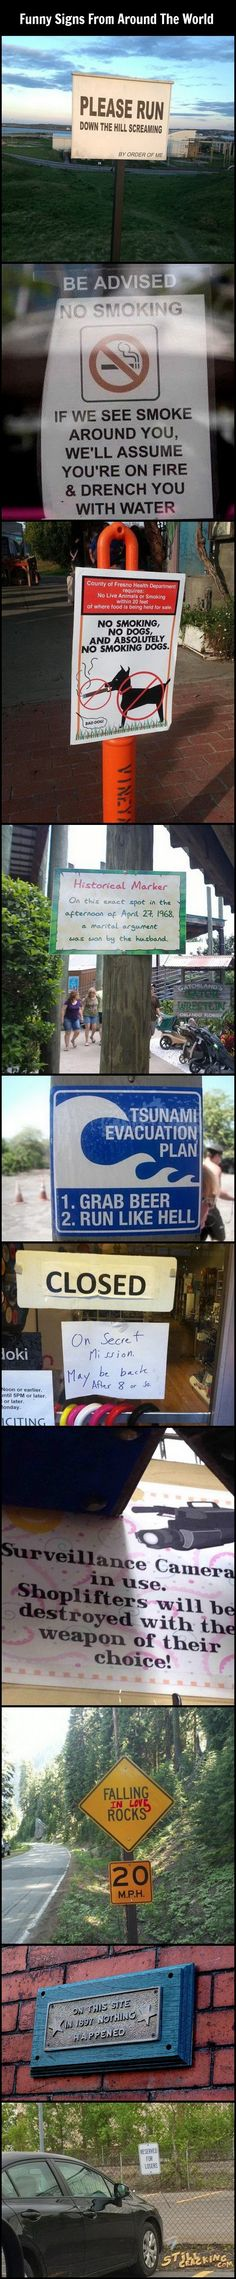 Still Cracking » Its Your Time To Laugh!Funny Signs From Around The World - Still Cracking